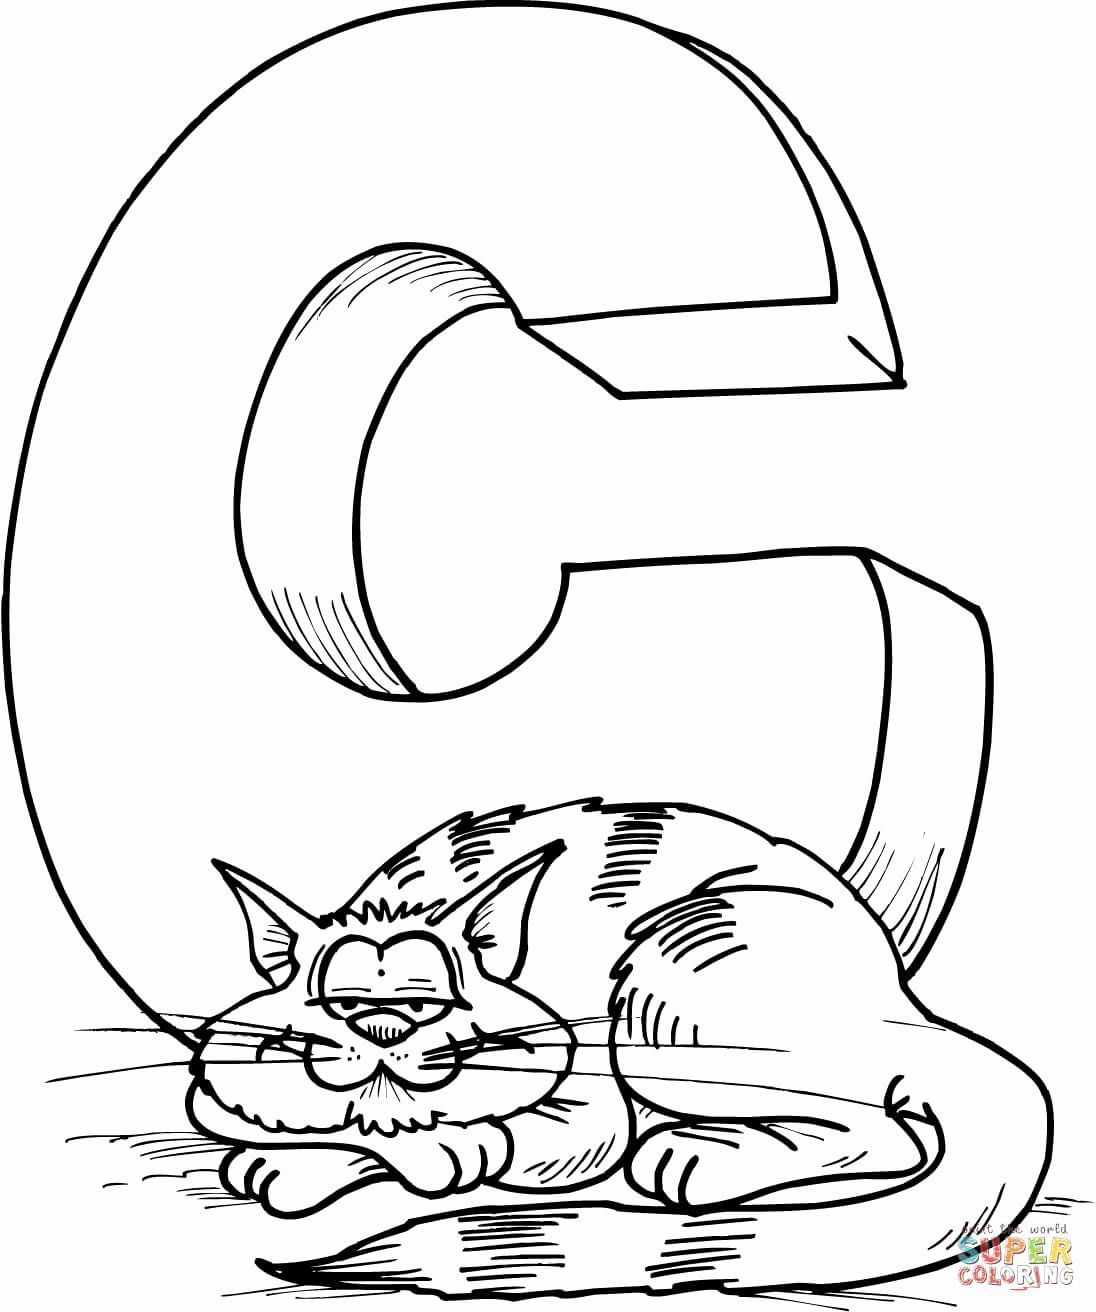 Letter C Coloring Sheet In